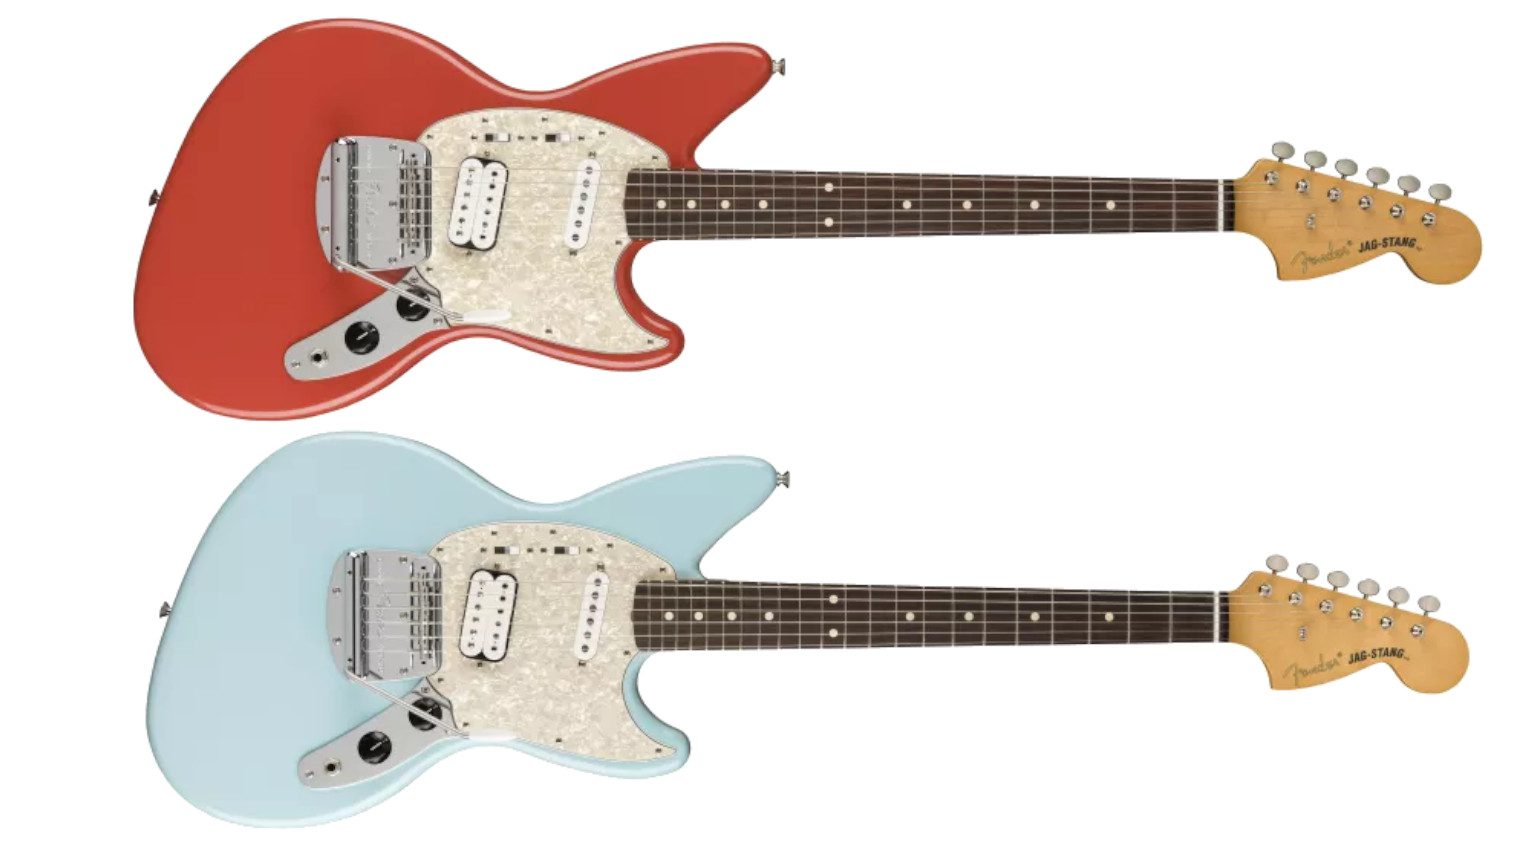 Fender Jag-Stang 2021 Mexiko Sonic Blue Fiesta Red Front